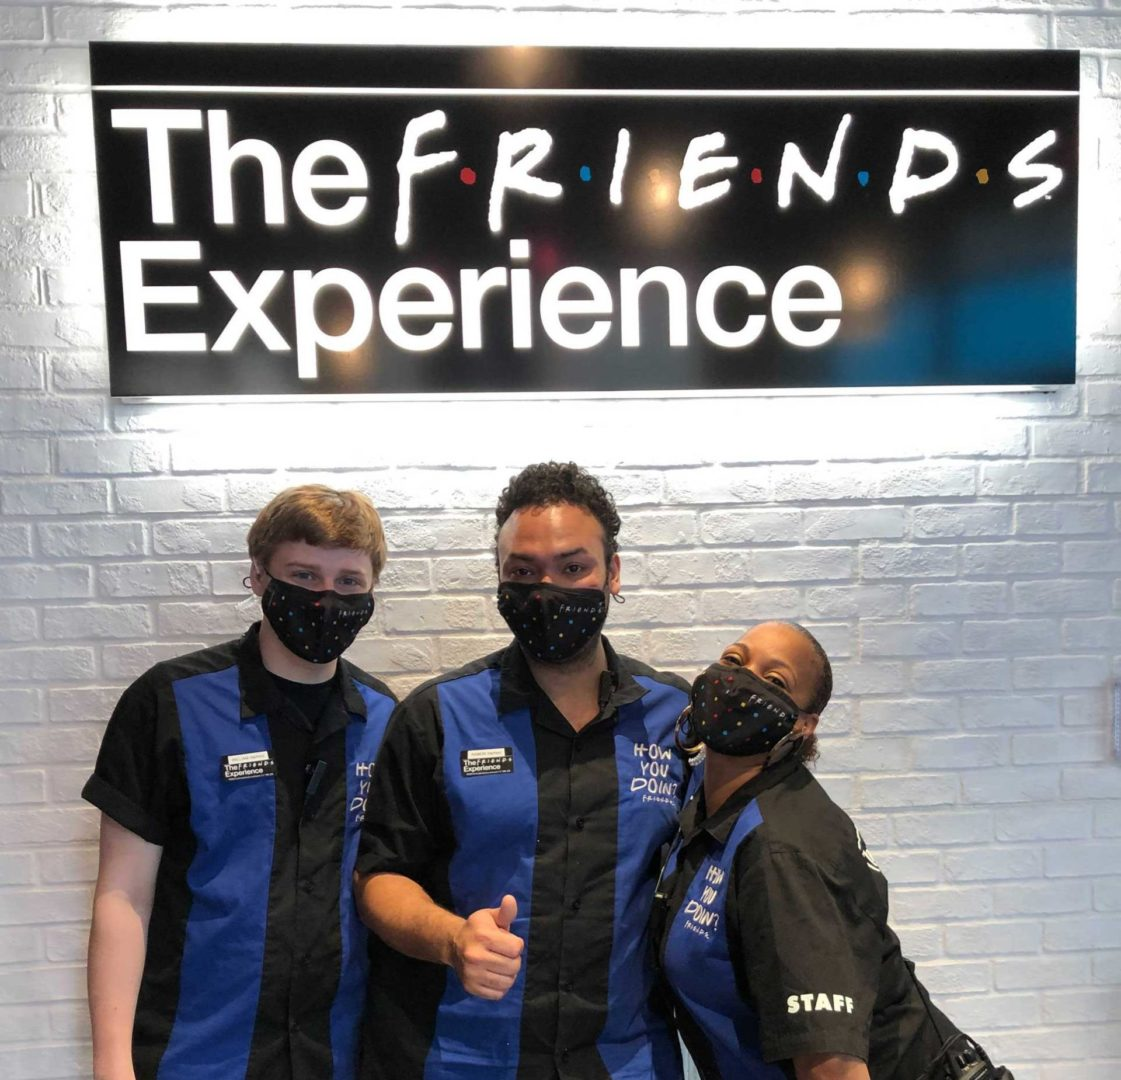 The FRIENDS™ Experience staff group photo